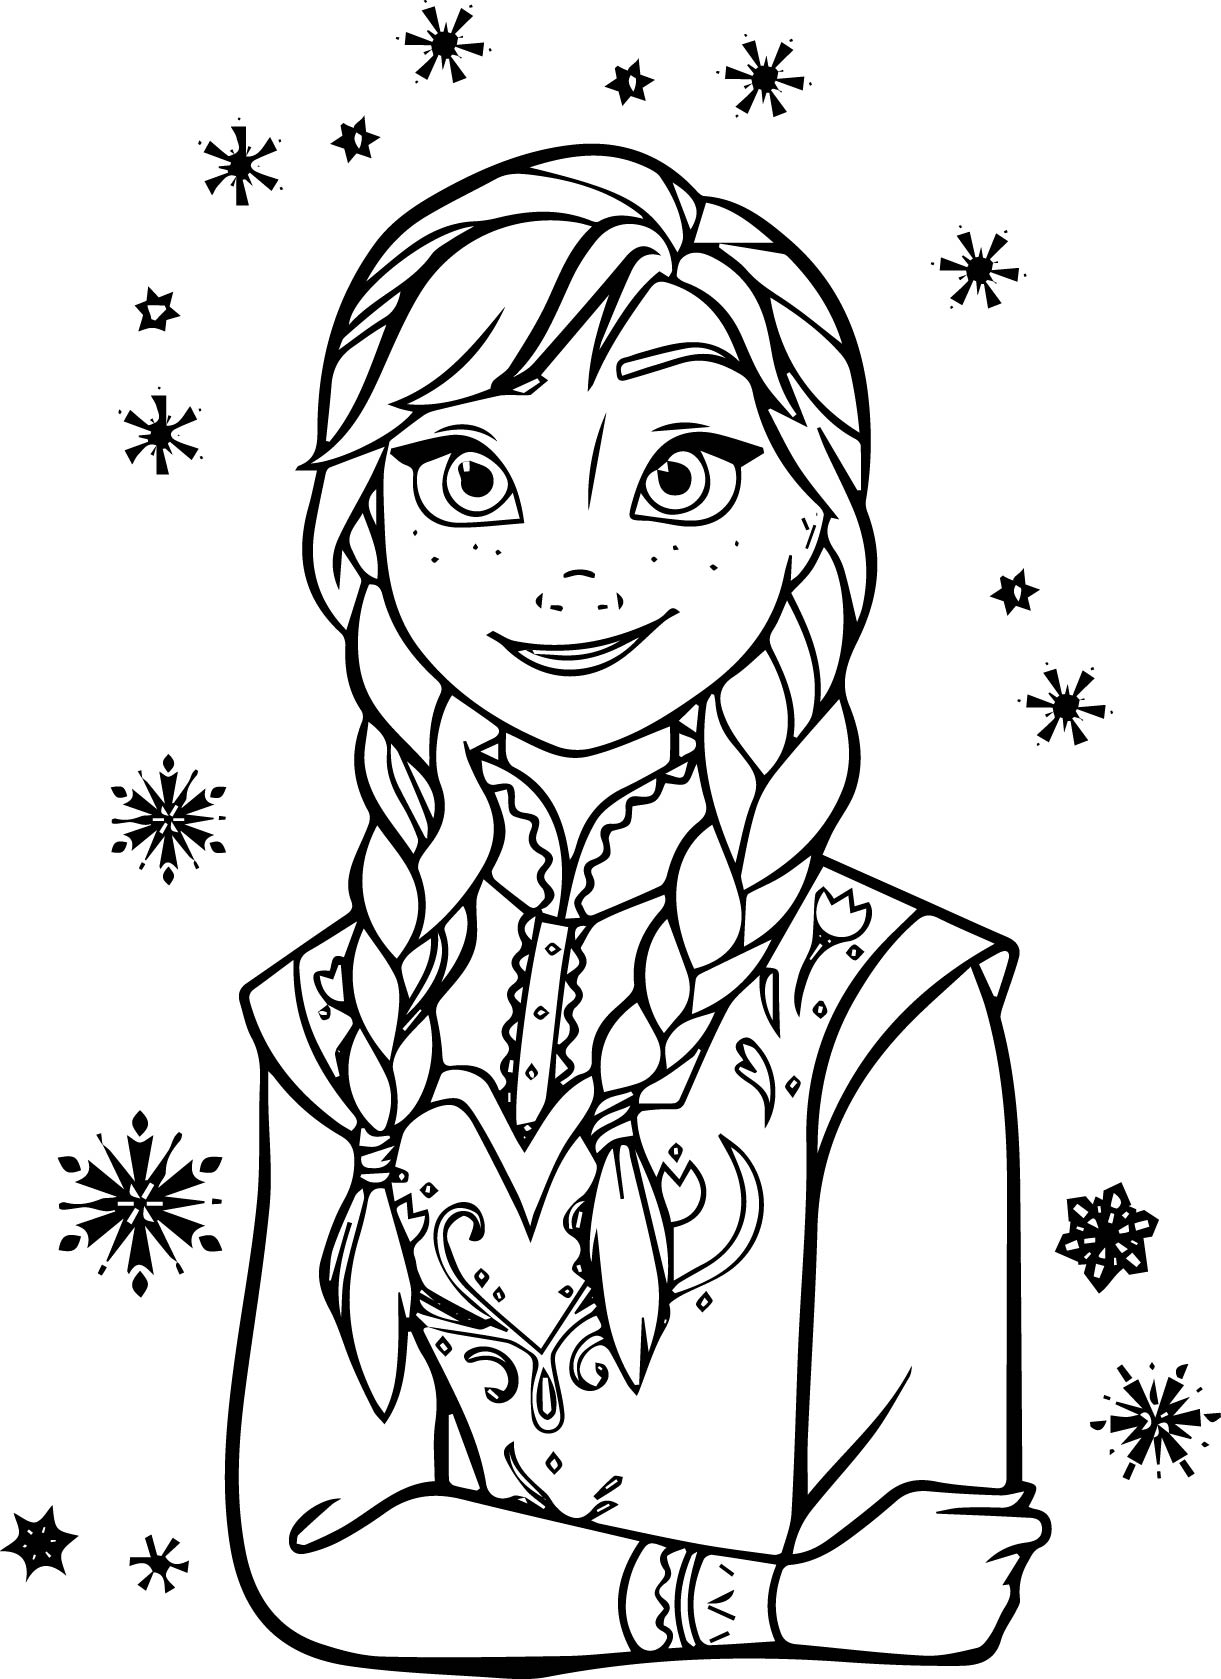 coloring pages to print frozen frozen coloring pages free printables at getdrawings to frozen print pages coloring